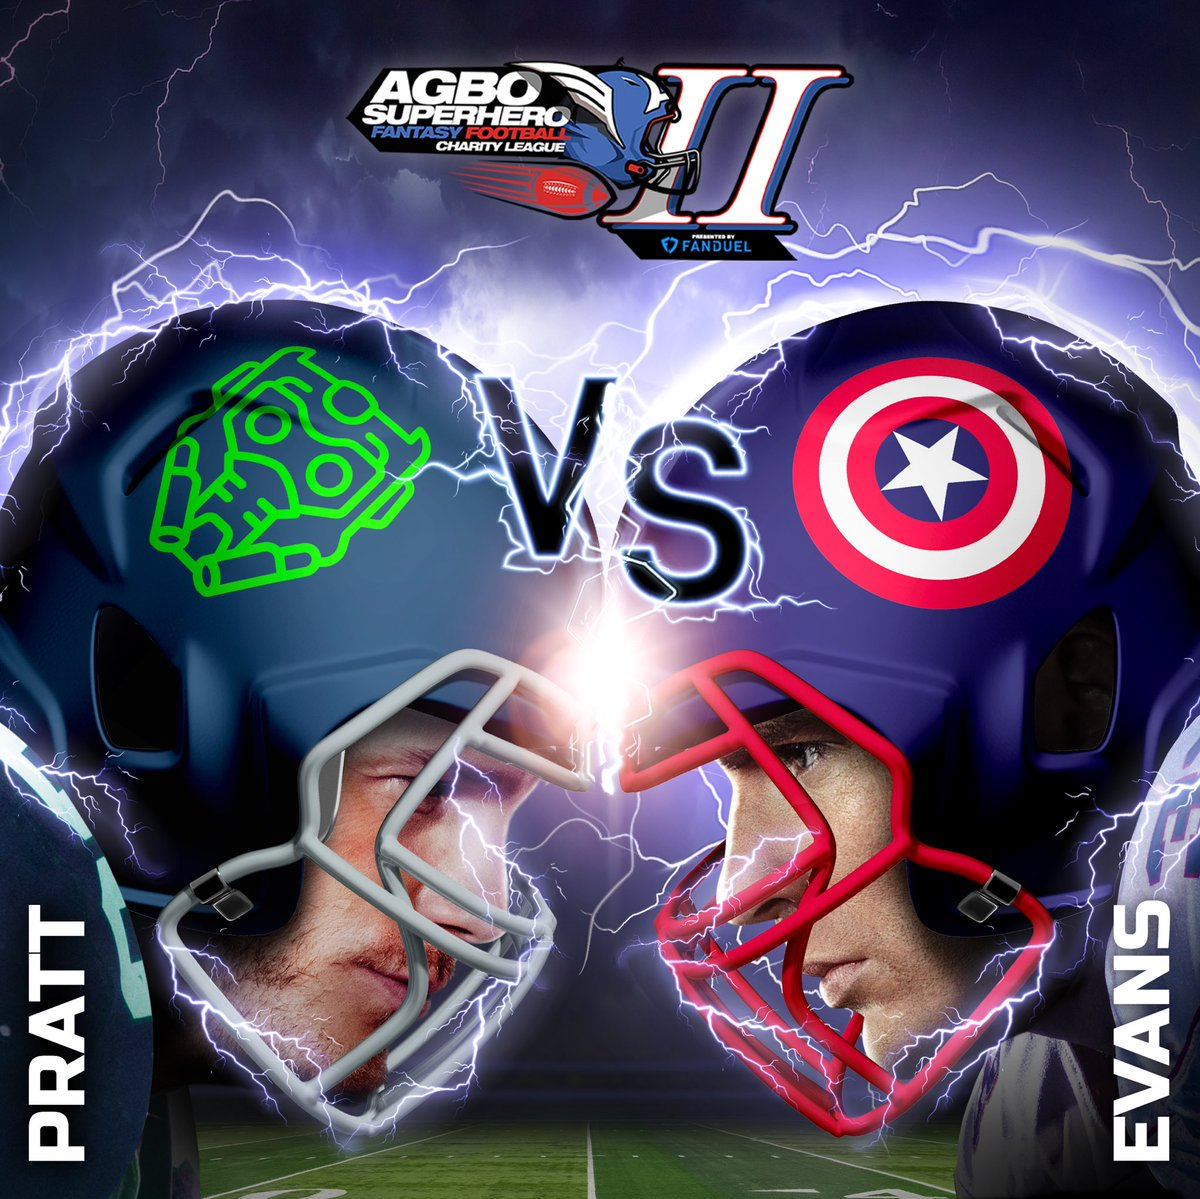 """This is the fight of our lives. We are going to win. Whatever it takes."" Damn right, Captain America!! Semifinals begin tonight.  Who ya got this round?!   #AGBOSuperheroLeague presented by @FanDuel"